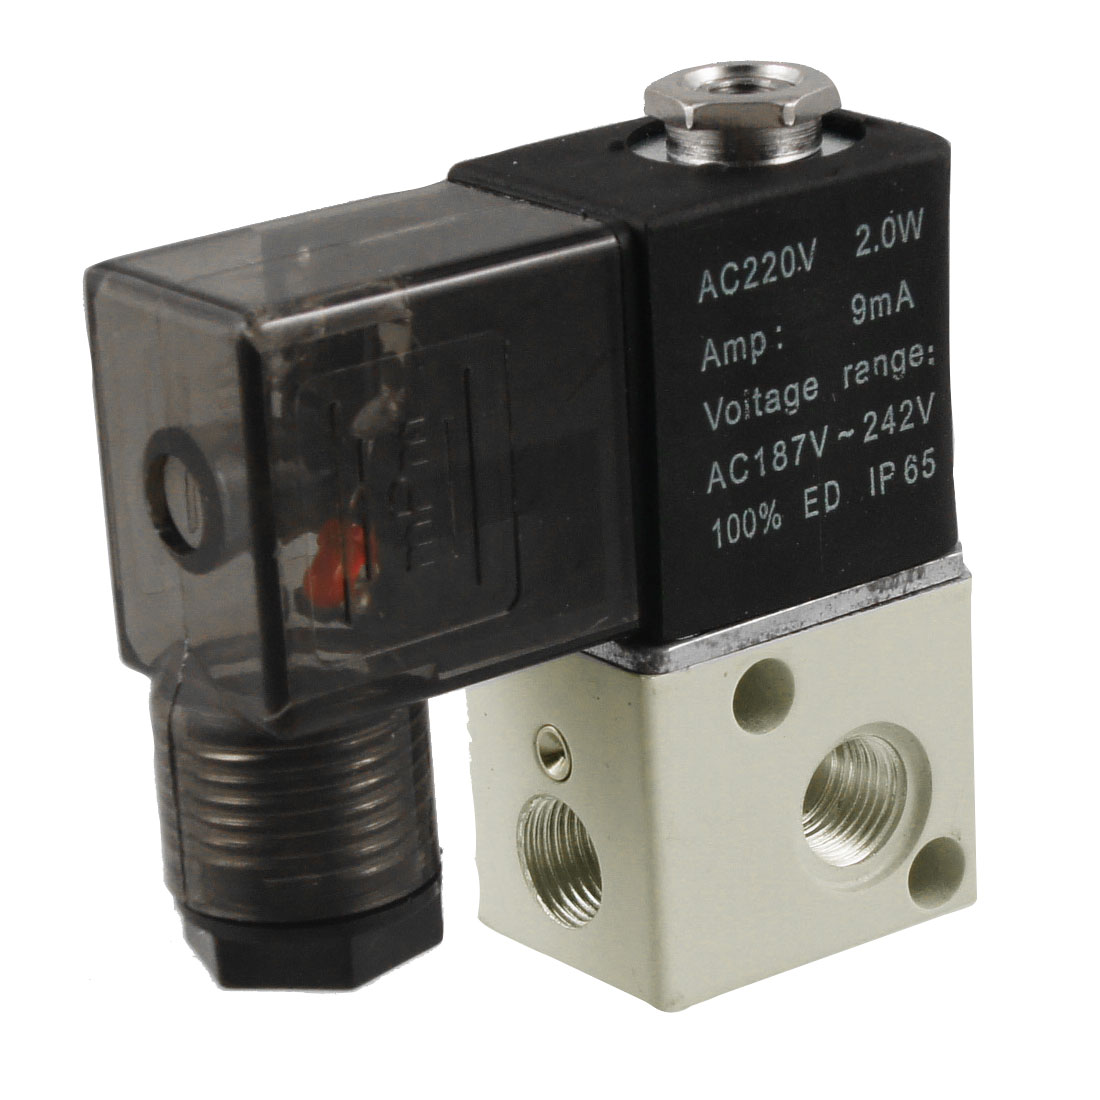 AC 220V 2.0W 3V1-06 2 Position 3 Way Magnetic Solenoid Valve